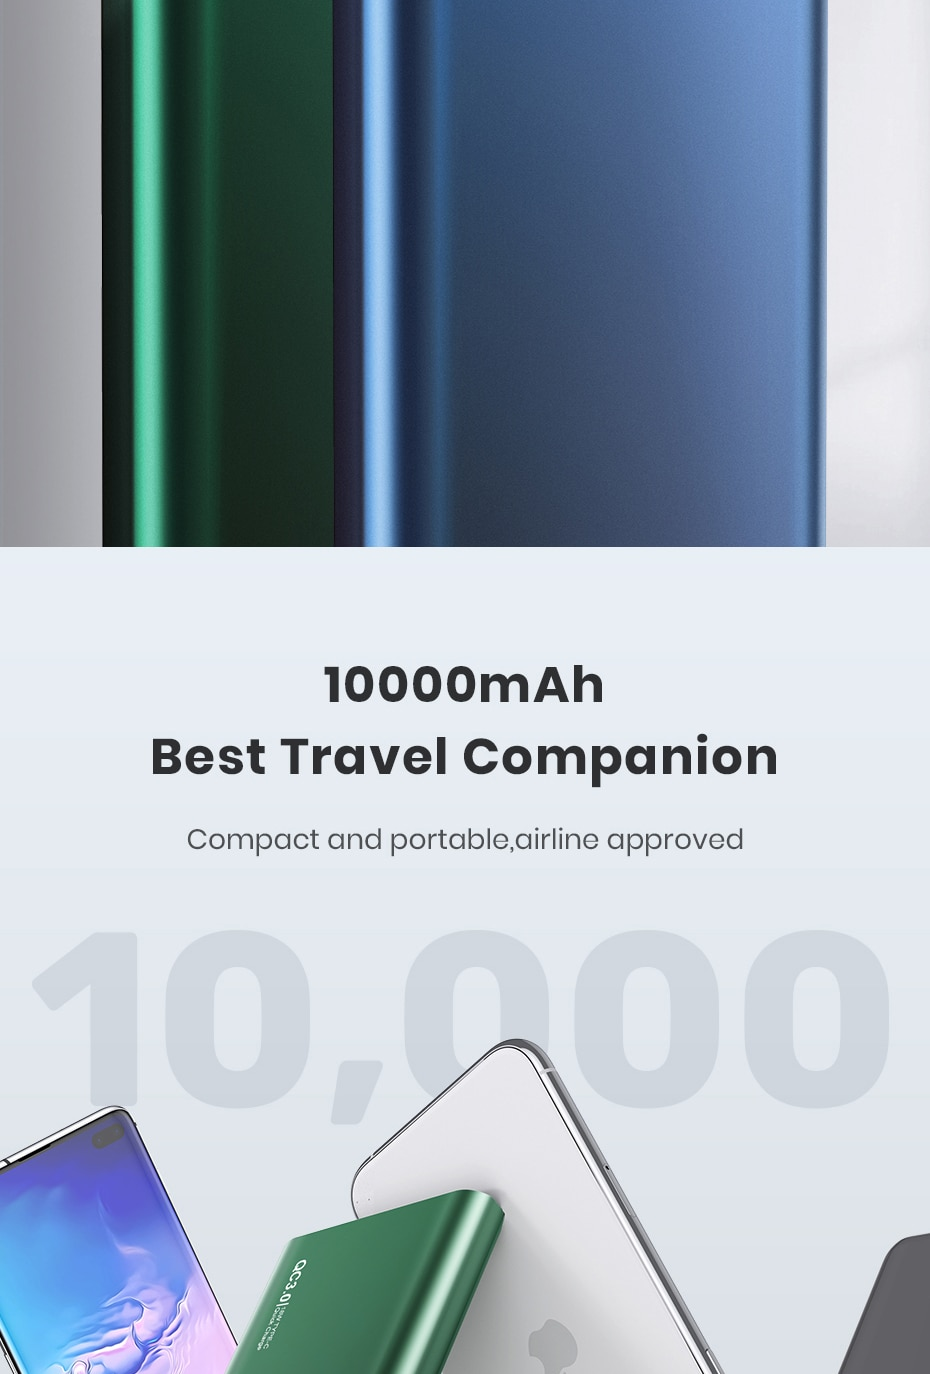 H93cda0bd56f742e6979311a0d9872478e - TOPK I1006P Power Bank 10000mAh Portable Charger LED External Battery PowerBank PD Two-way Fast Charging PoverBank for Xiaomi mi